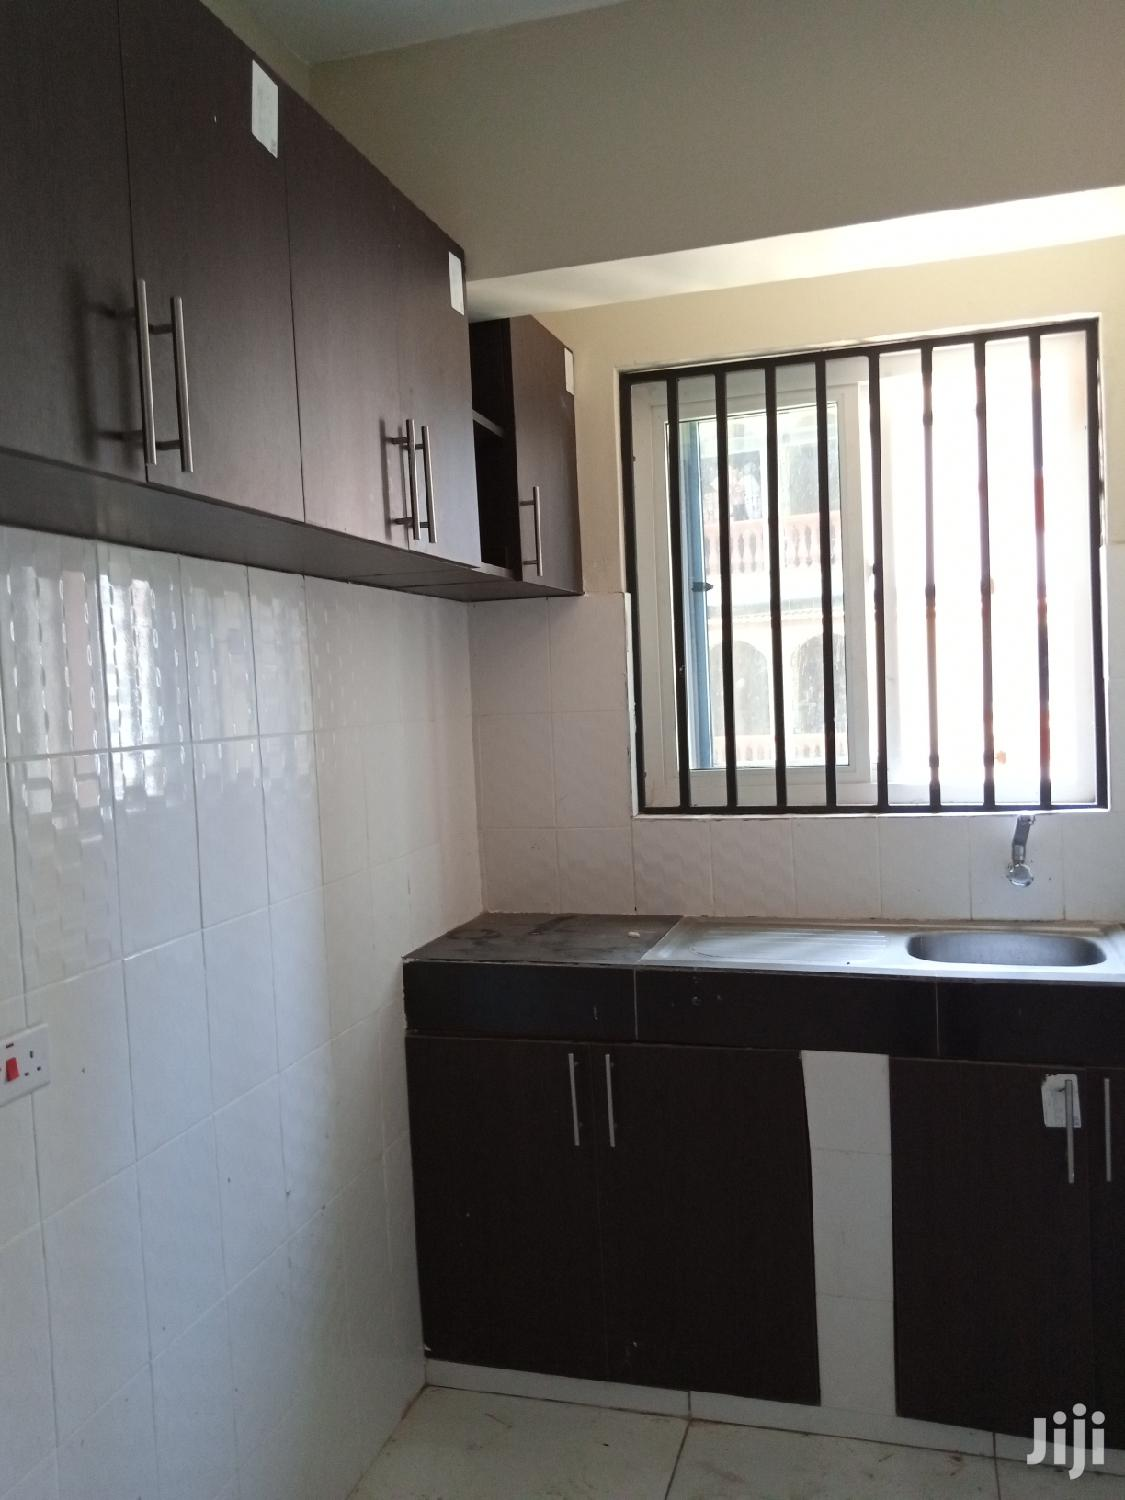 Two Bedroom Apartment to Let in Bamburi | Houses & Apartments For Rent for sale in Kisauni, Mombasa, Kenya